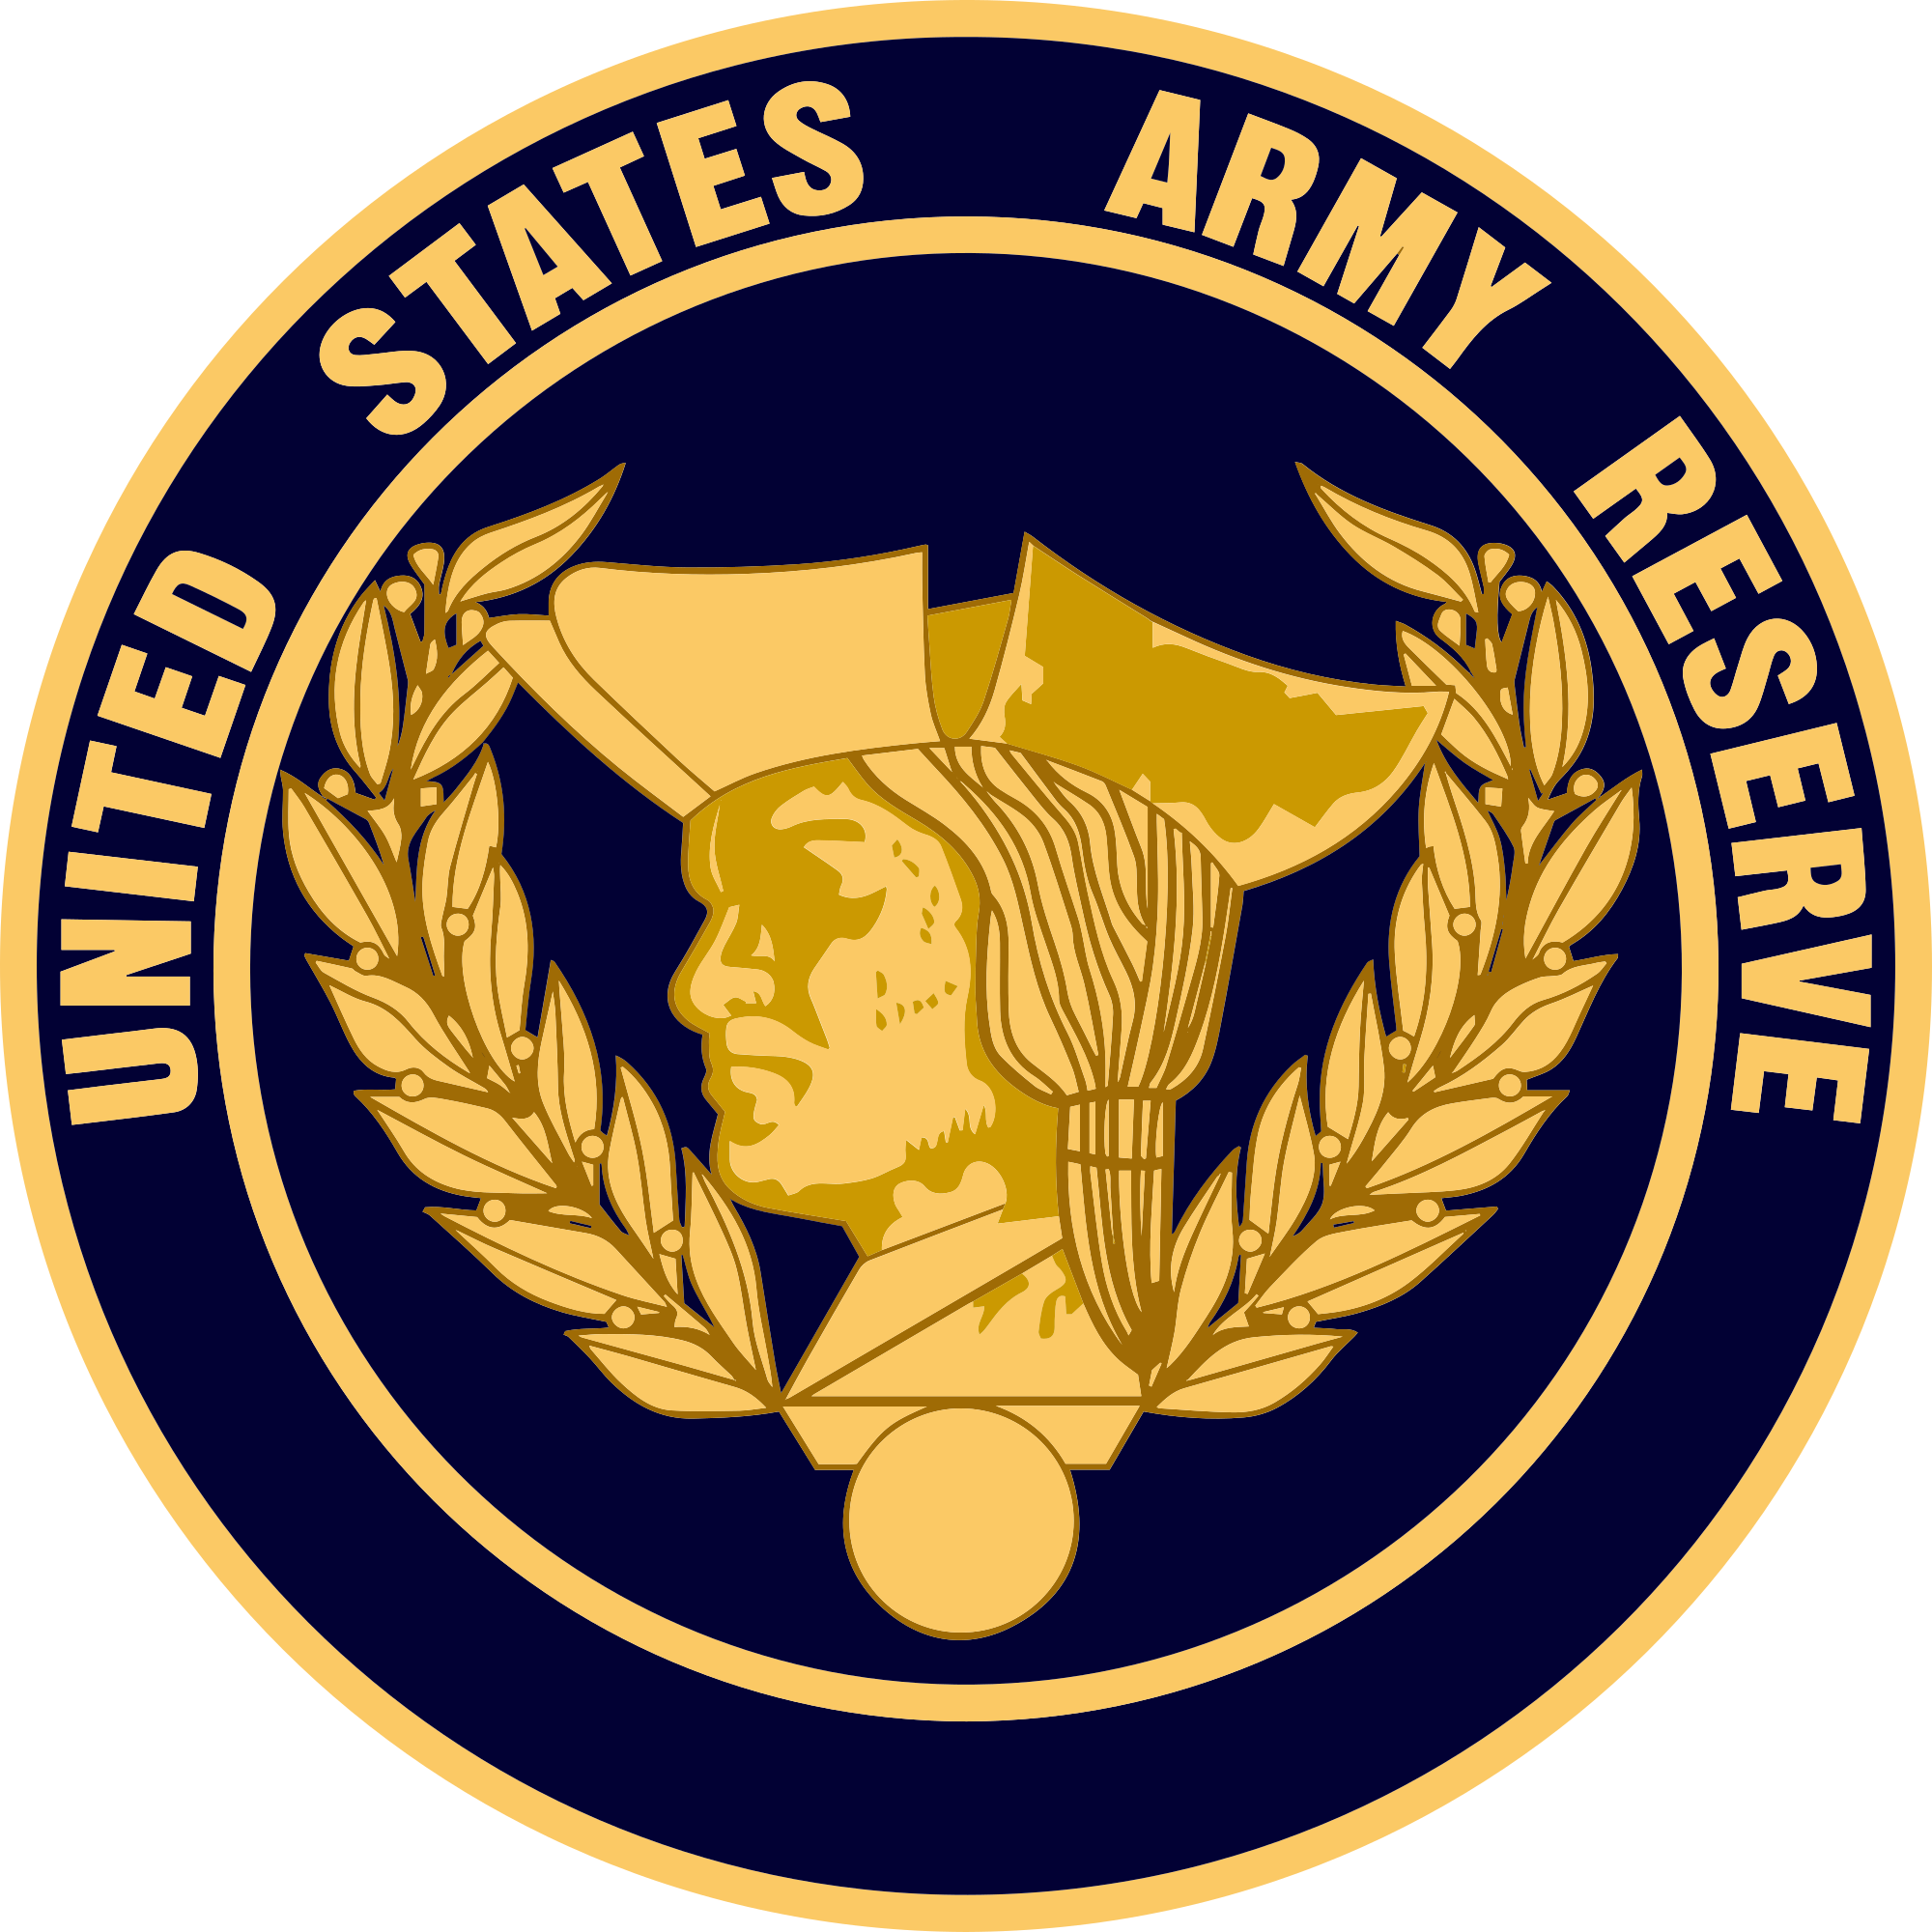 Army seal png. File of the u